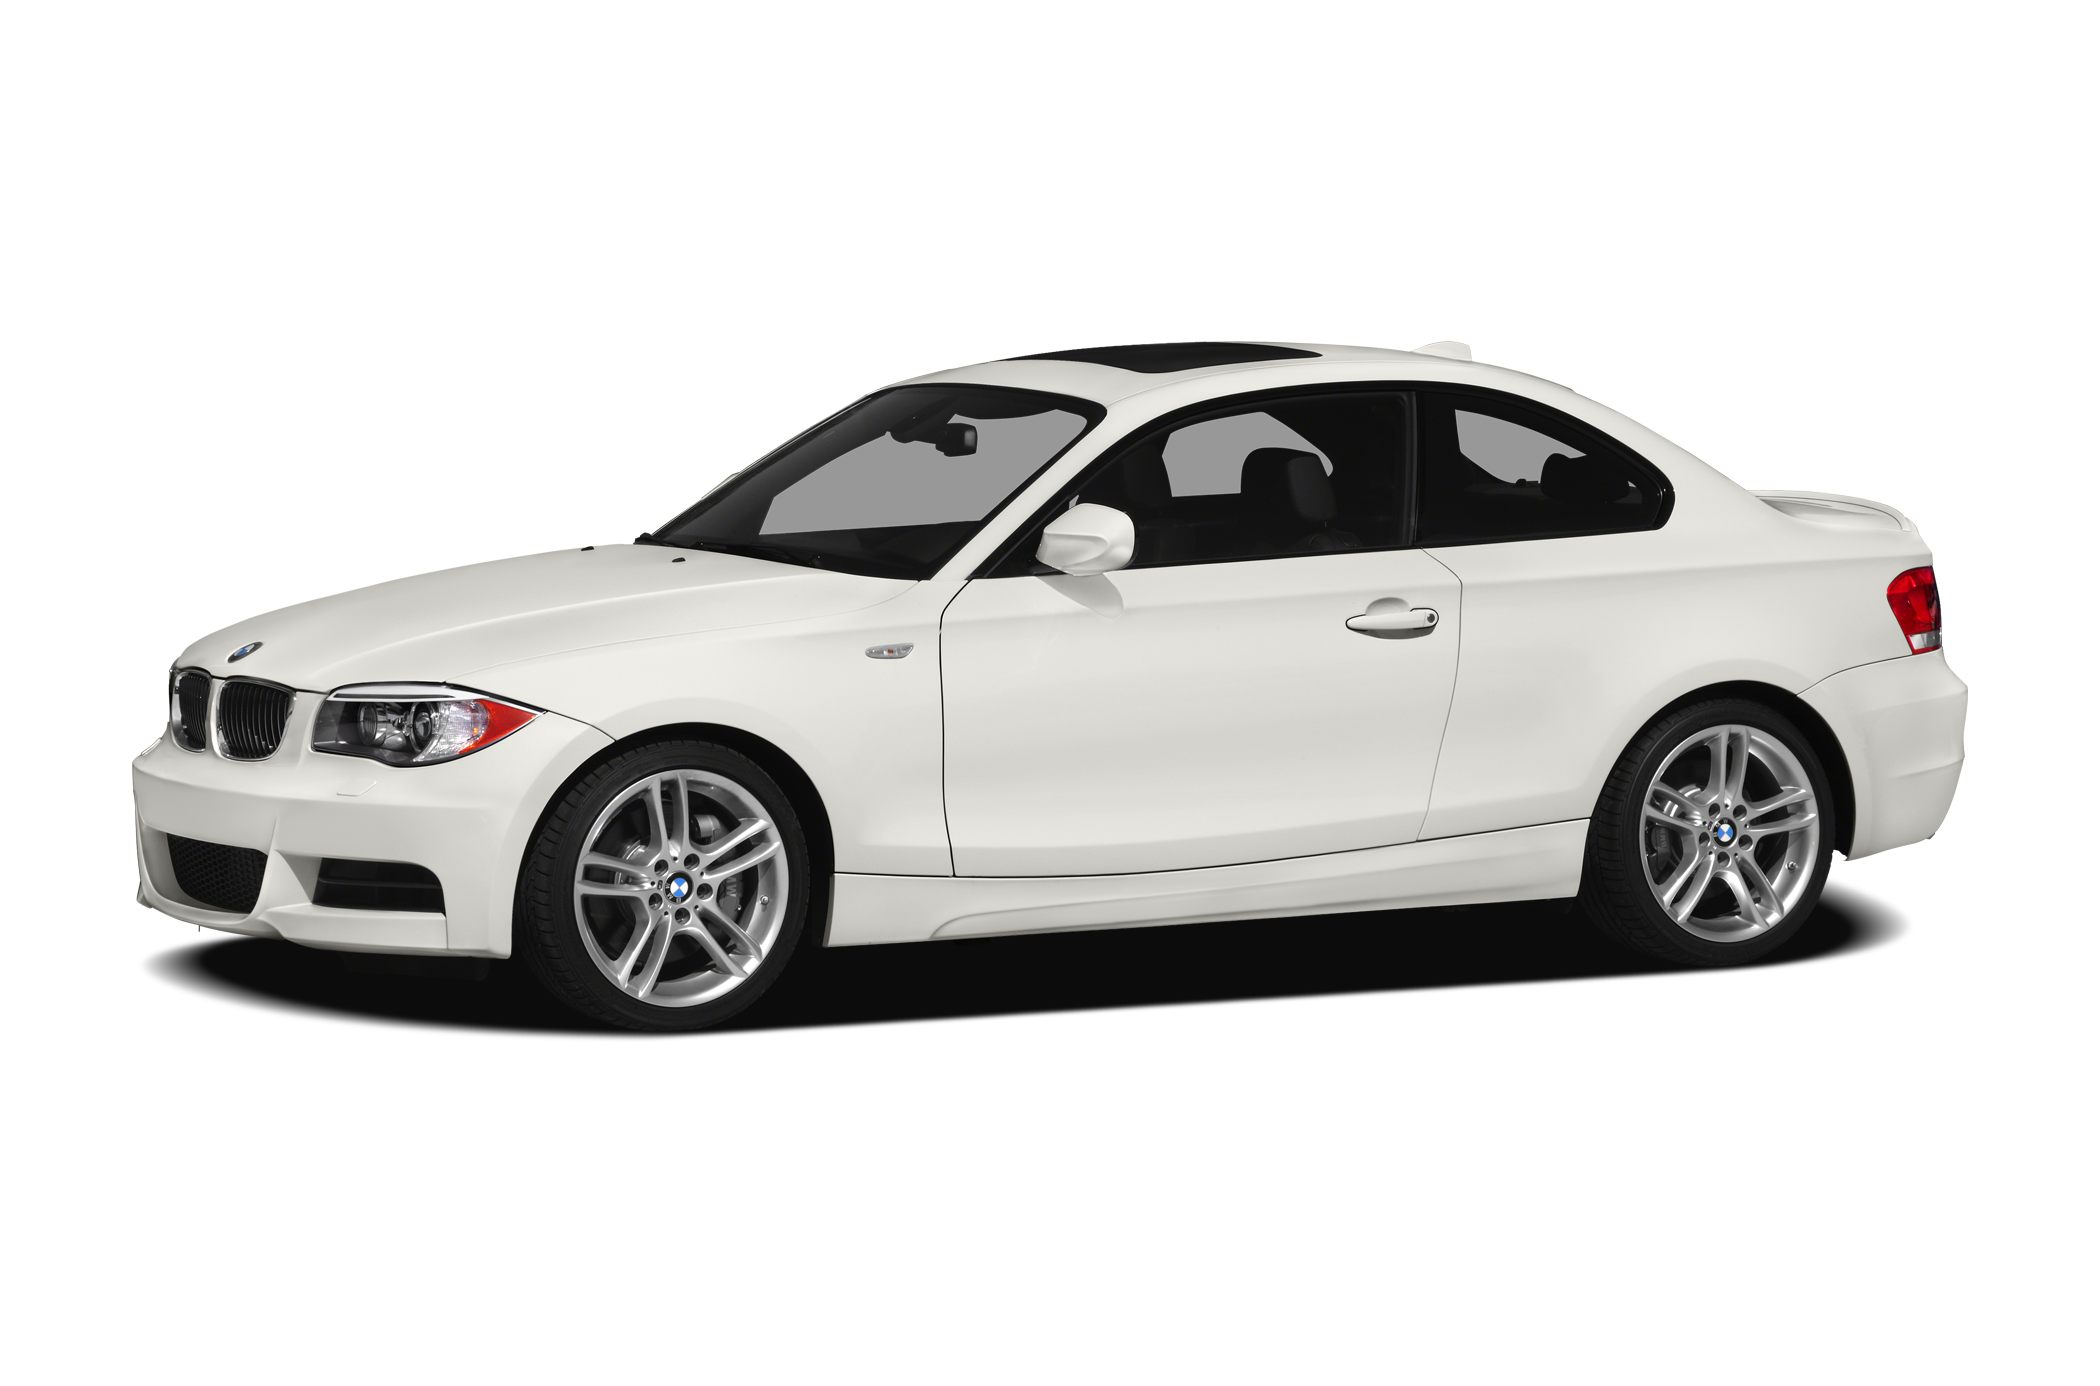 2012 bmw 135 new car test drive rh autoblog com 2012 bmw 128i convertible owners manual 2012 bmw 135i owners manual